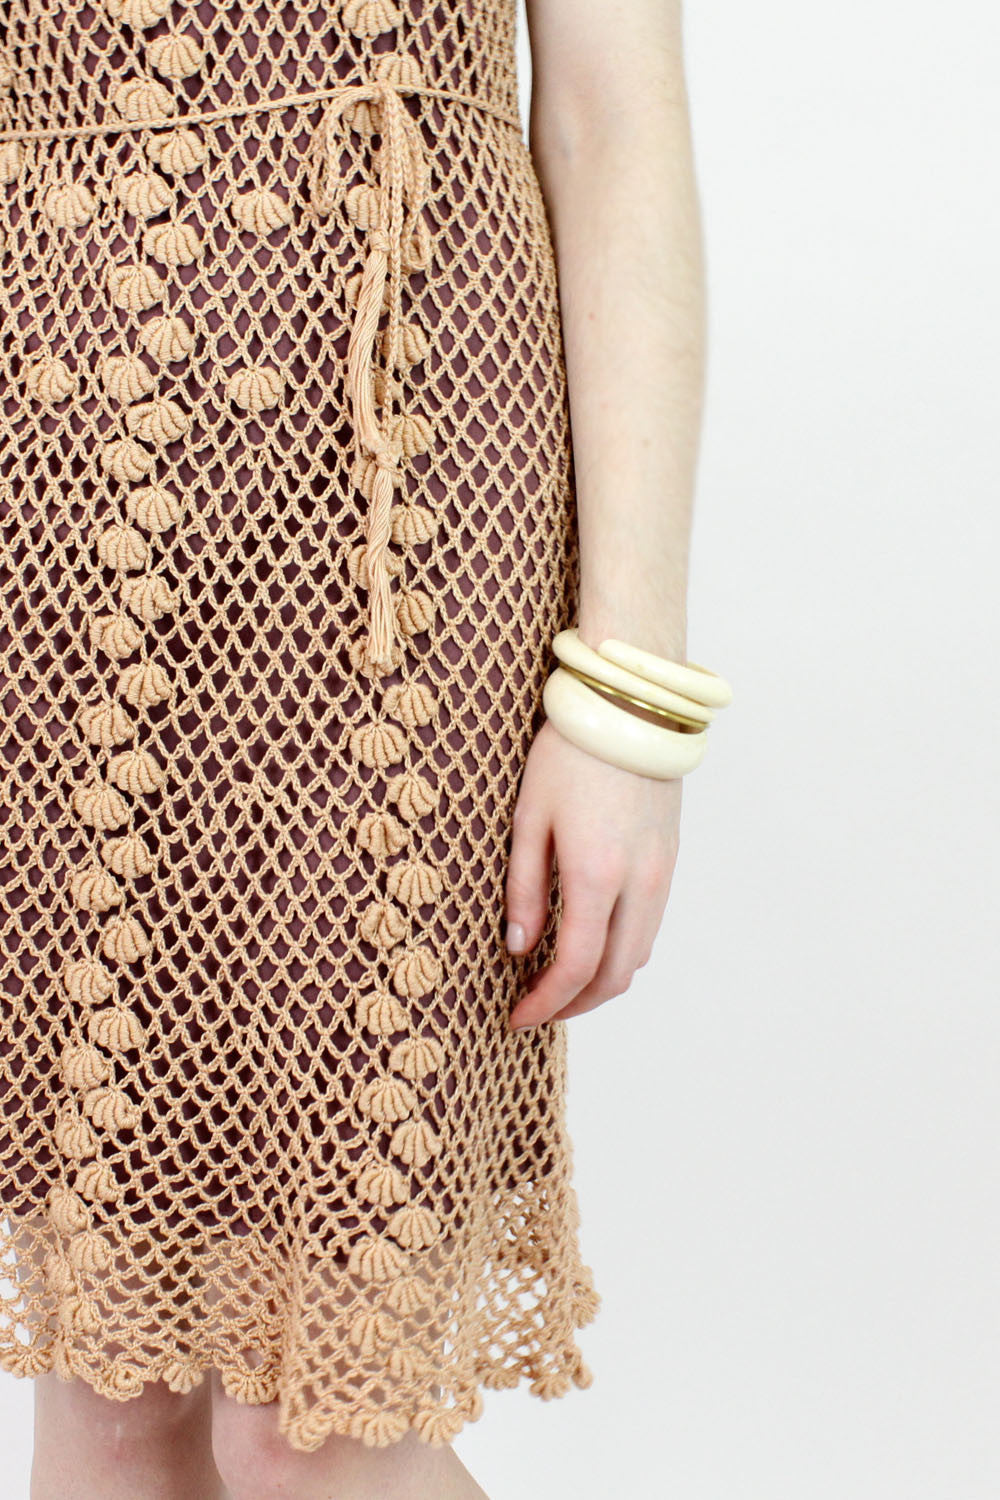 vinatge crochet dress detail